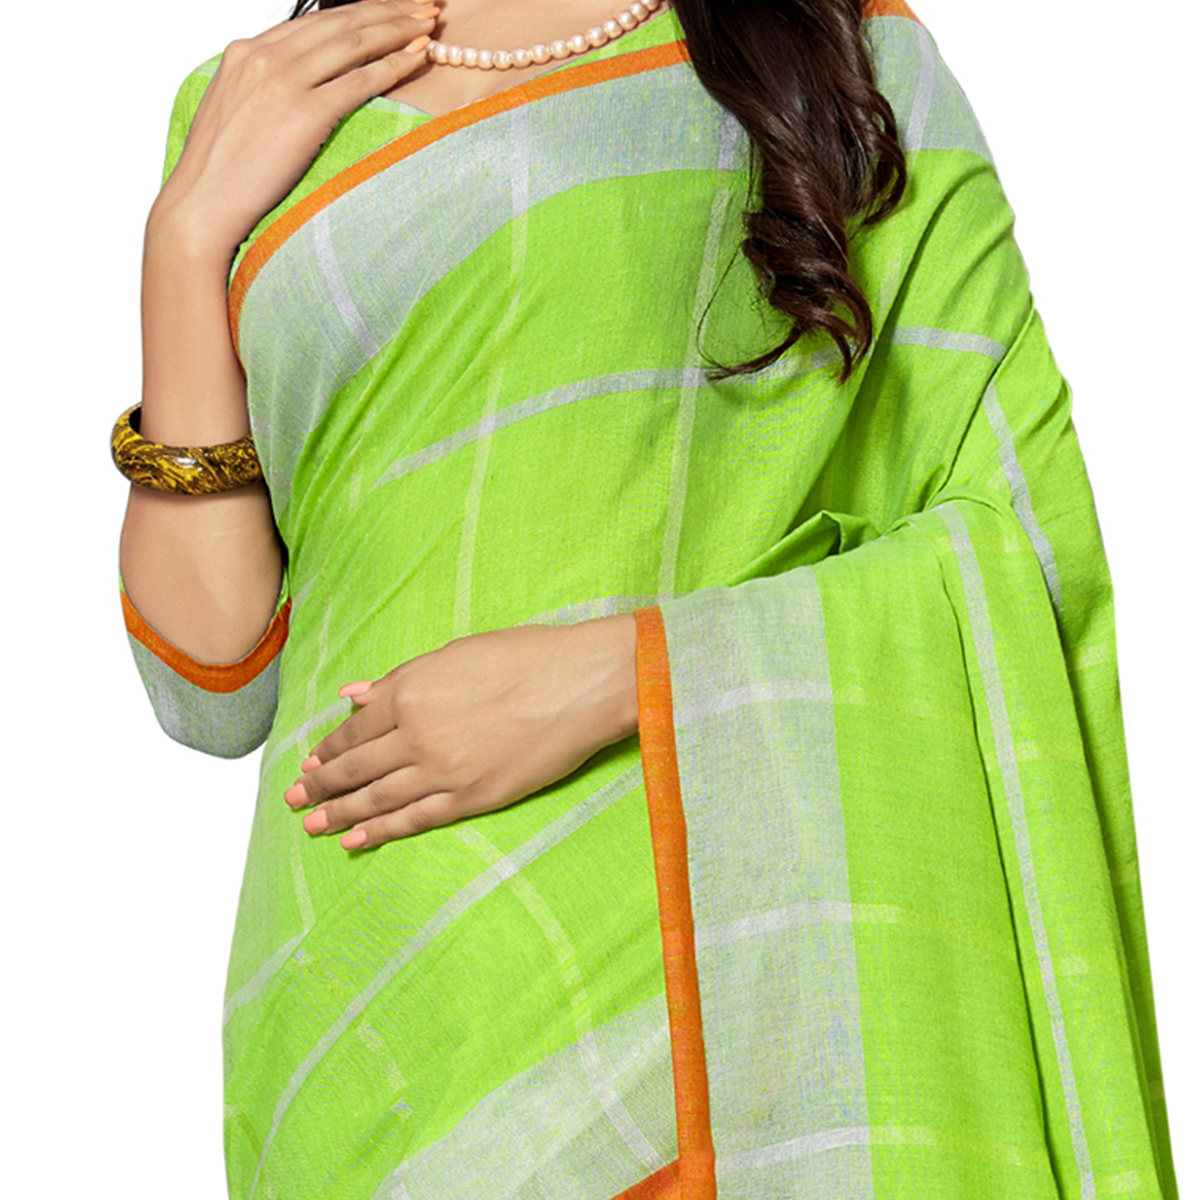 Preferable Parrot Green Colored Fesive Wear Stripe Print Cotton Silk Saree With Tassels